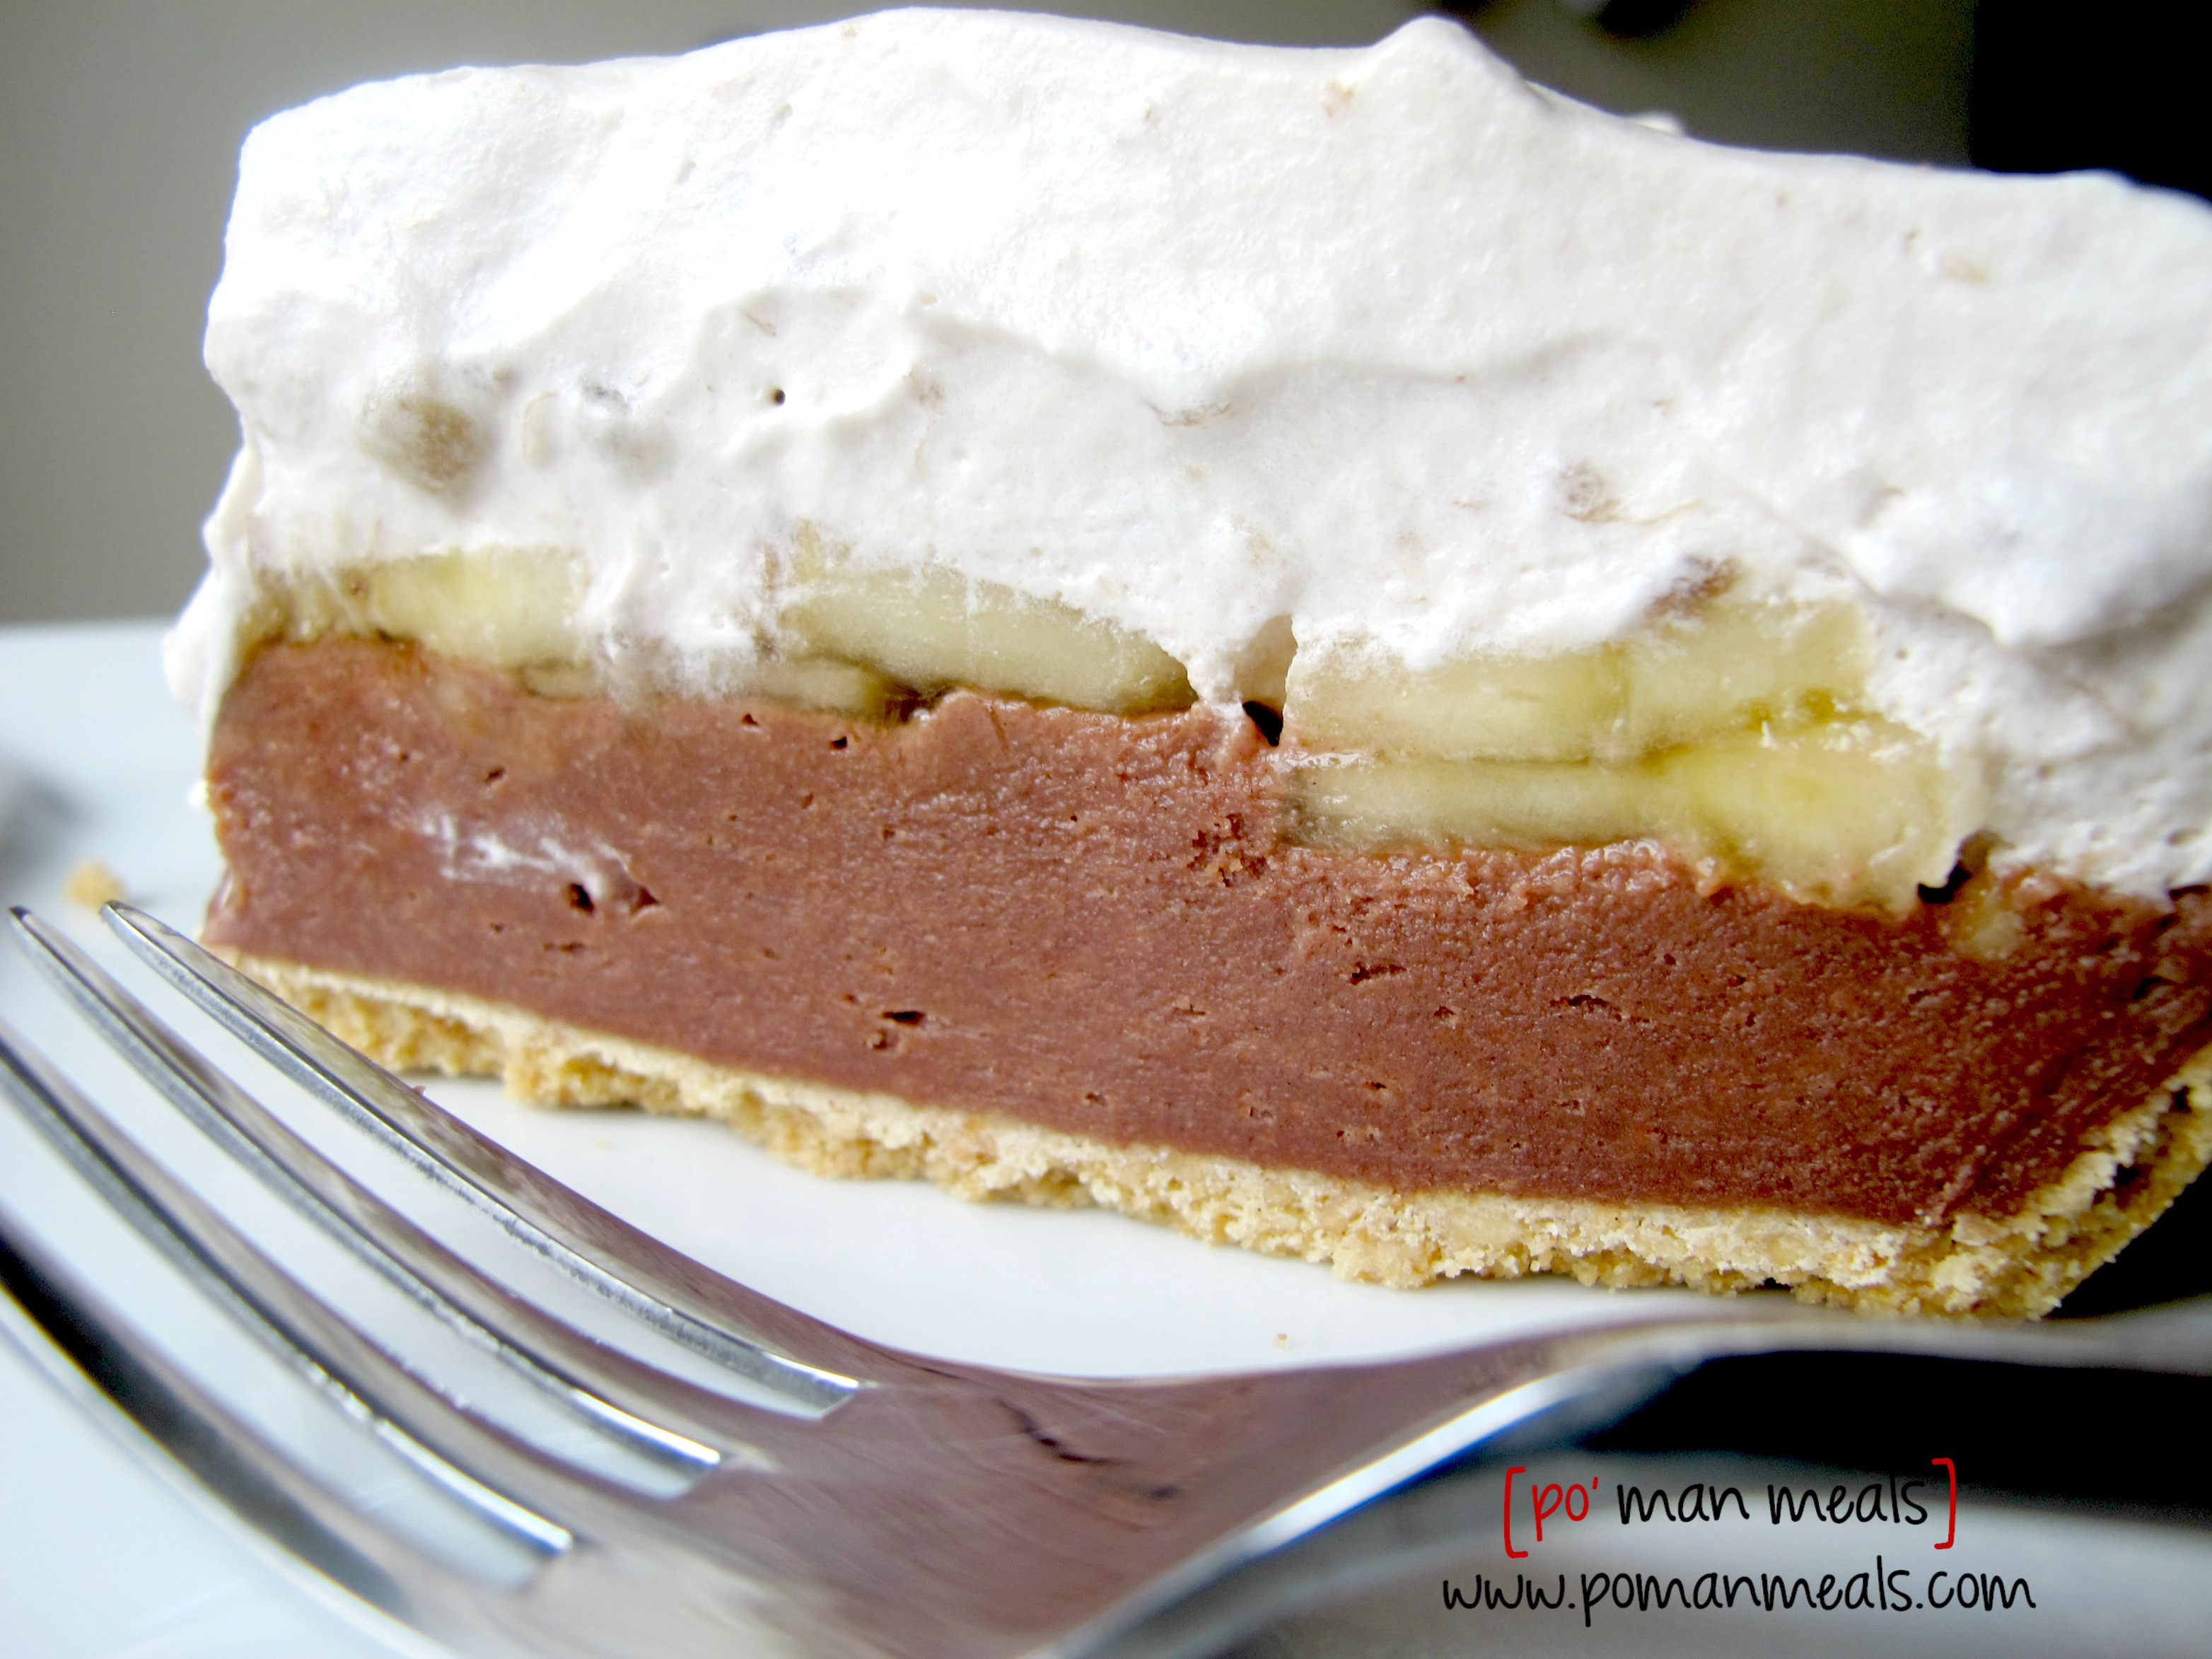 po' man meals - three layer chocolate banana cream pie